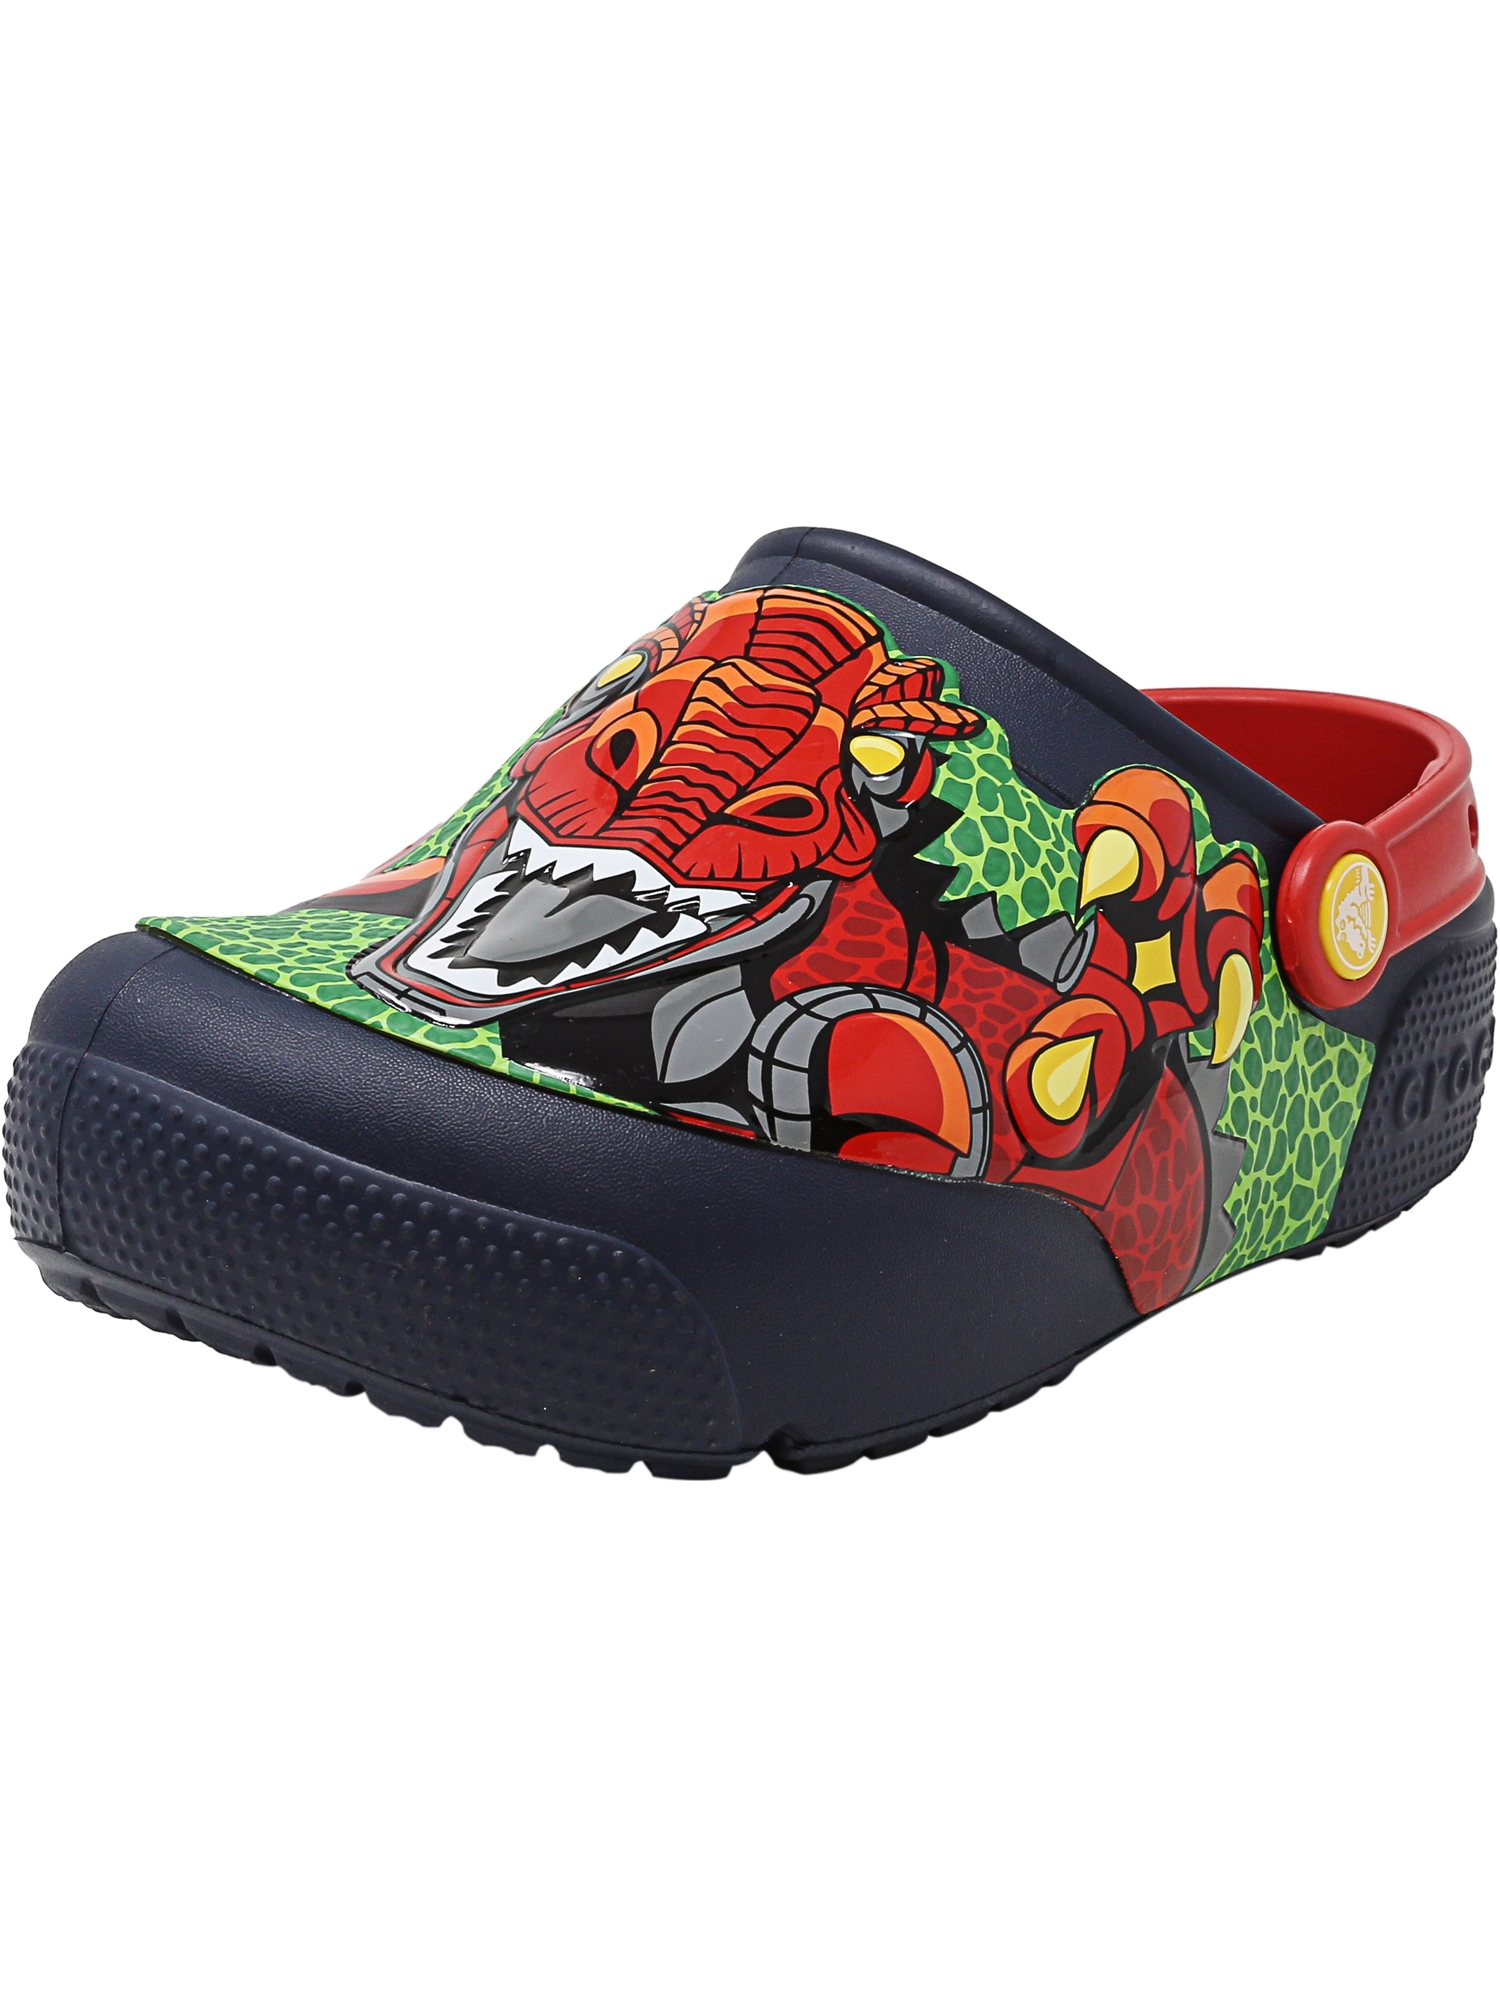 Crocs Crocsfunlab Lights Clog Robosaur Rex Ankle-High Clogs 3M by Crocs